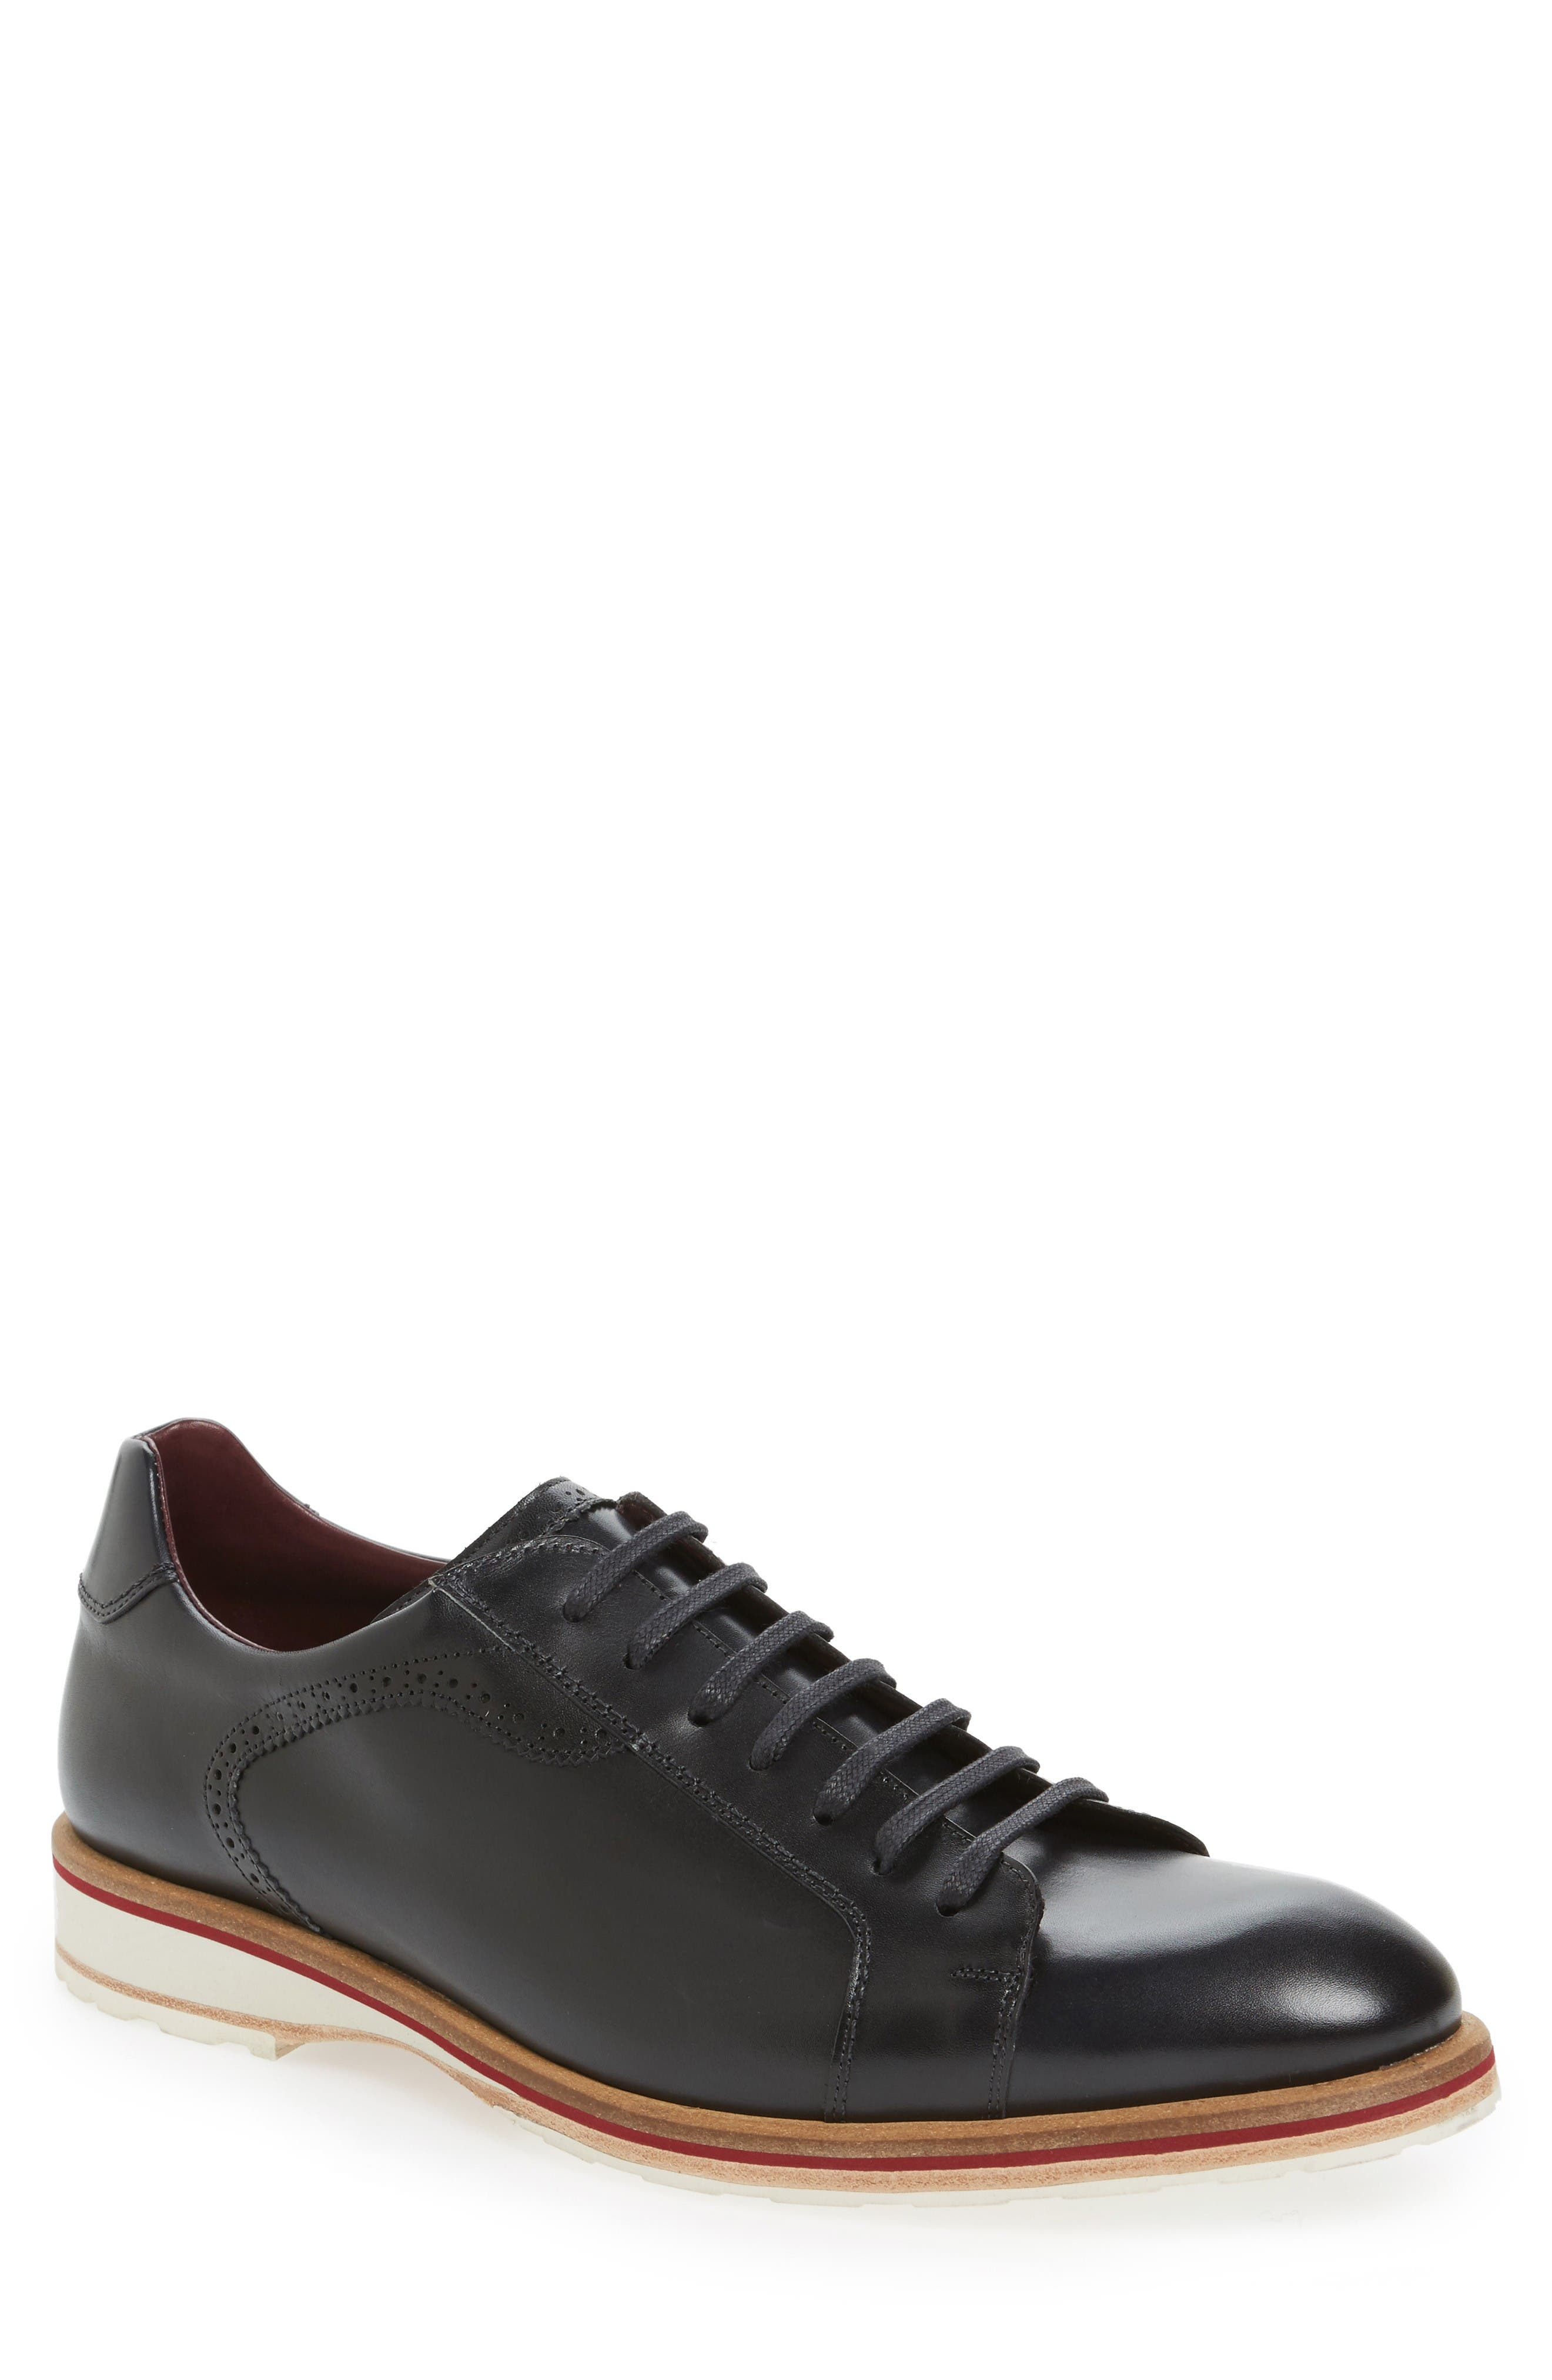 MEZLAN Mendel Plain-Toe Derby in Graphite Leather